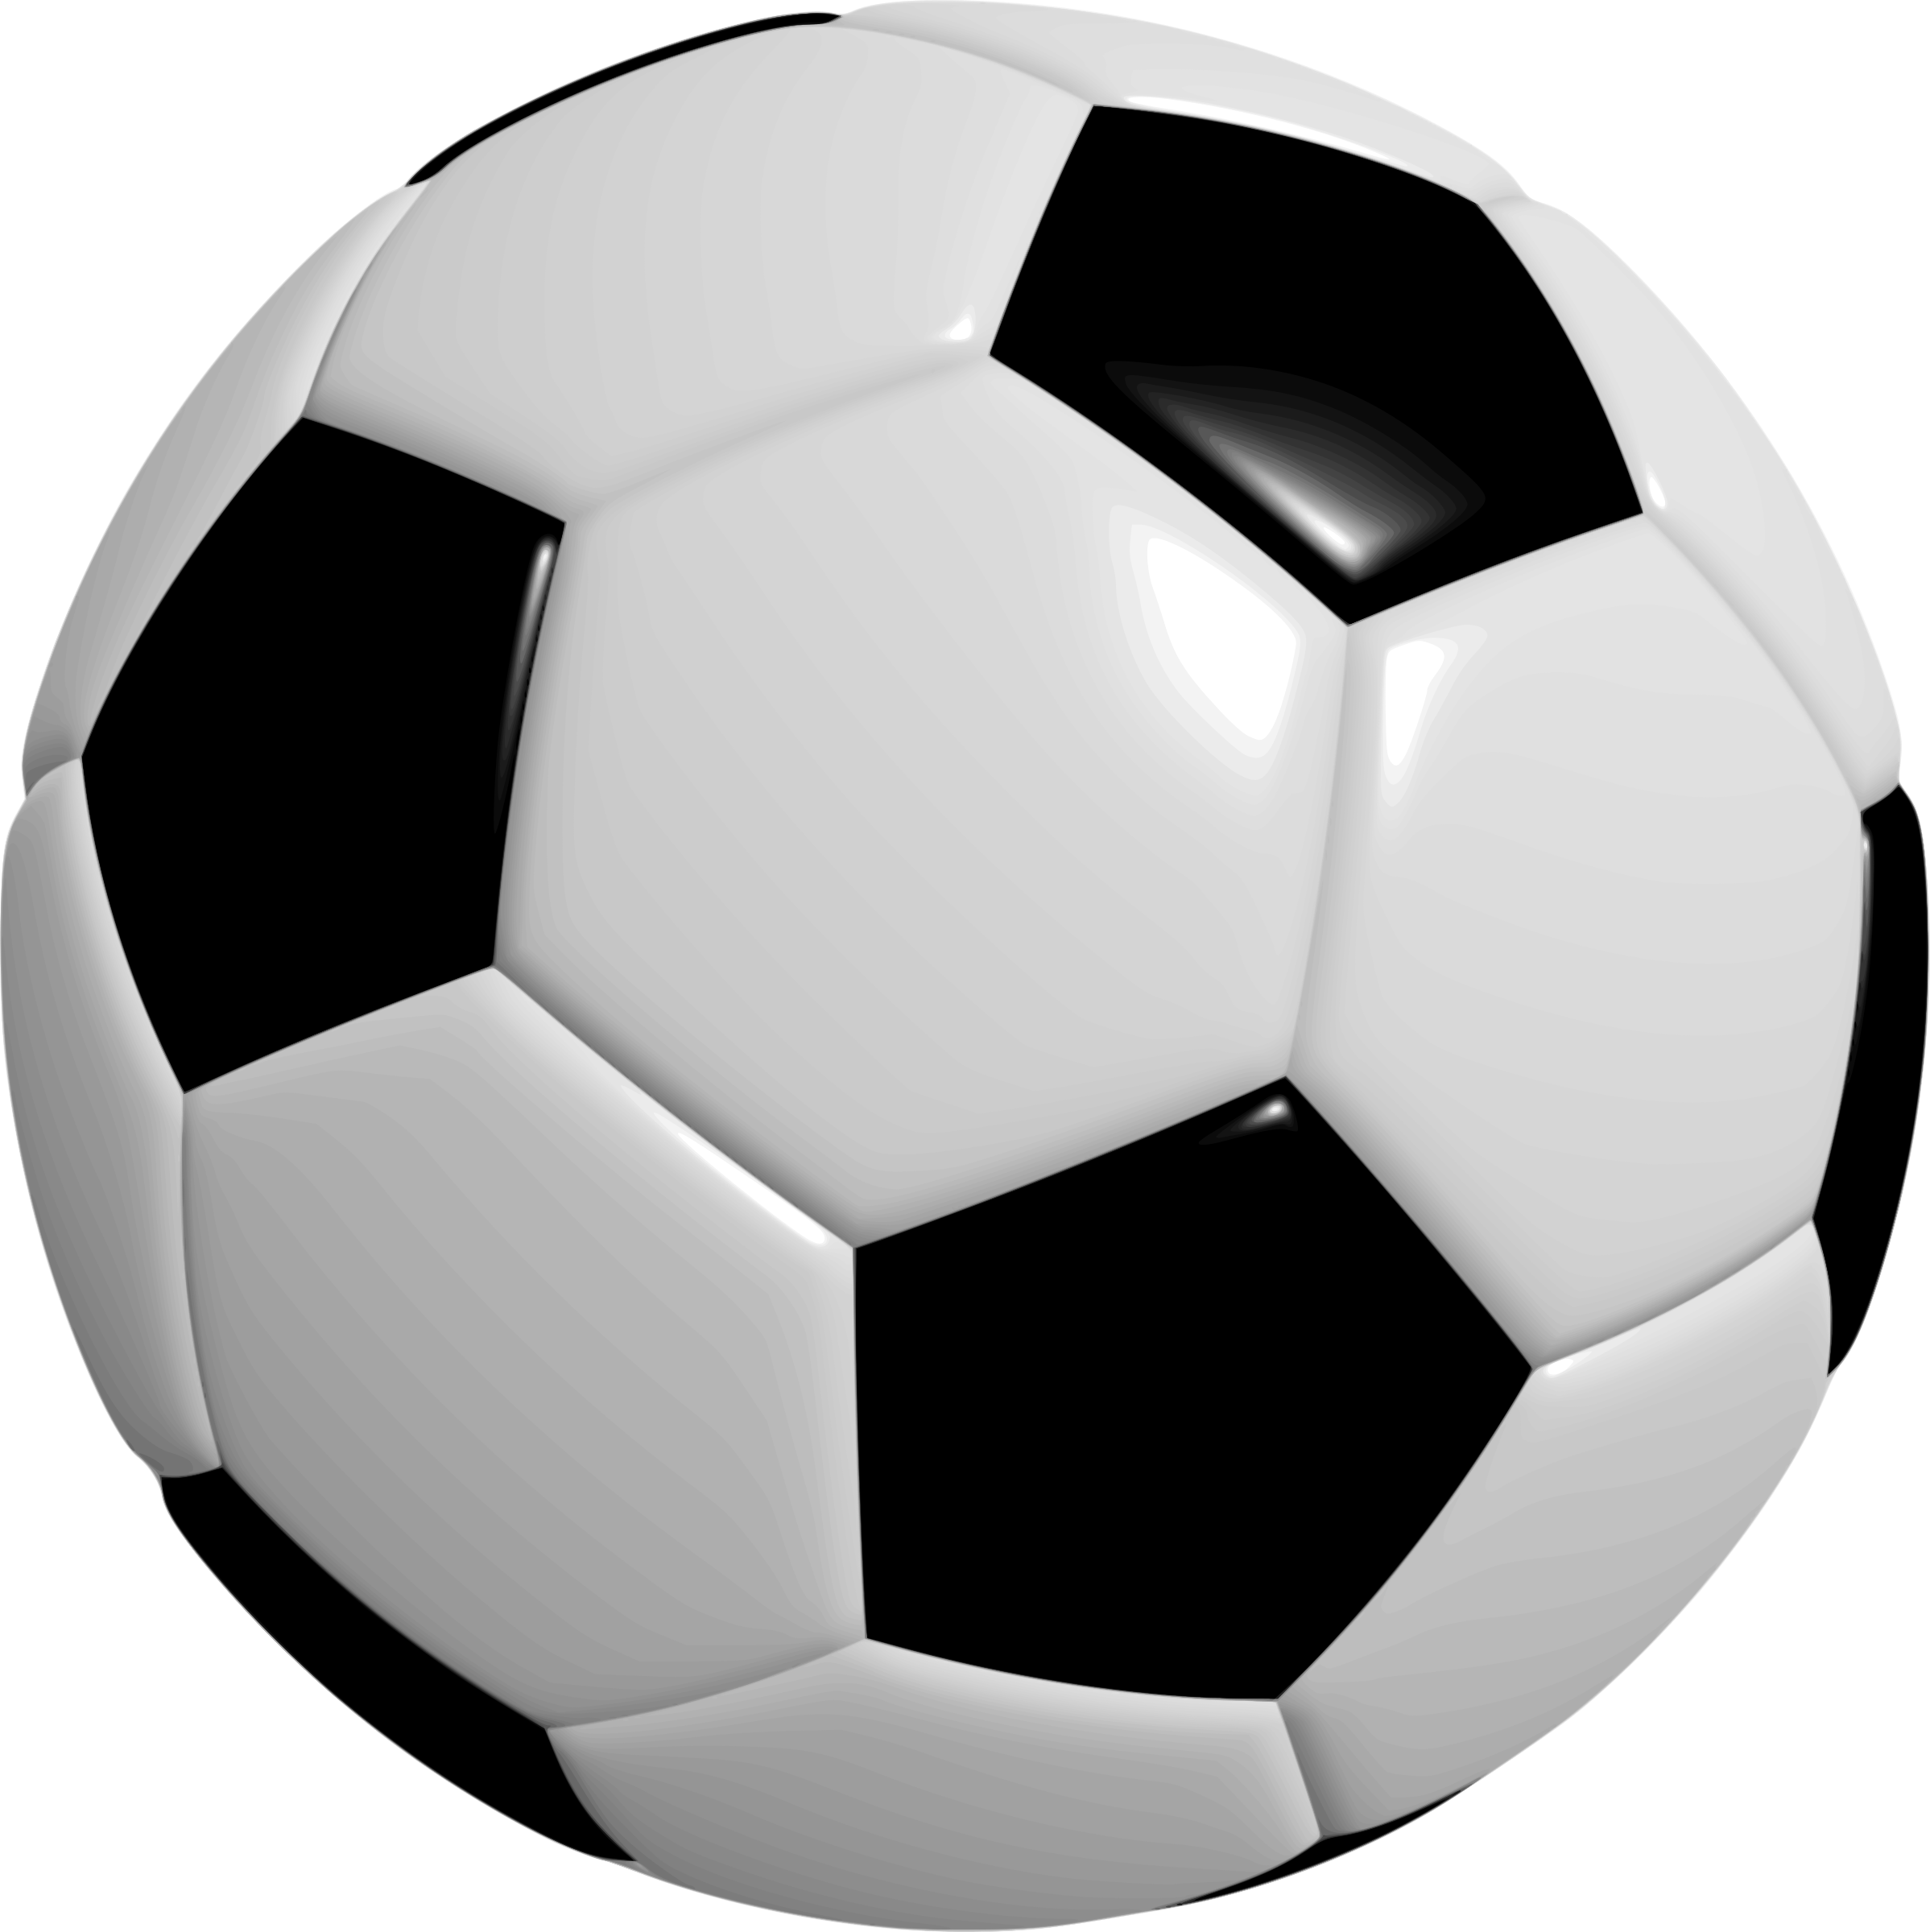 Soccerball icons  Noun Project